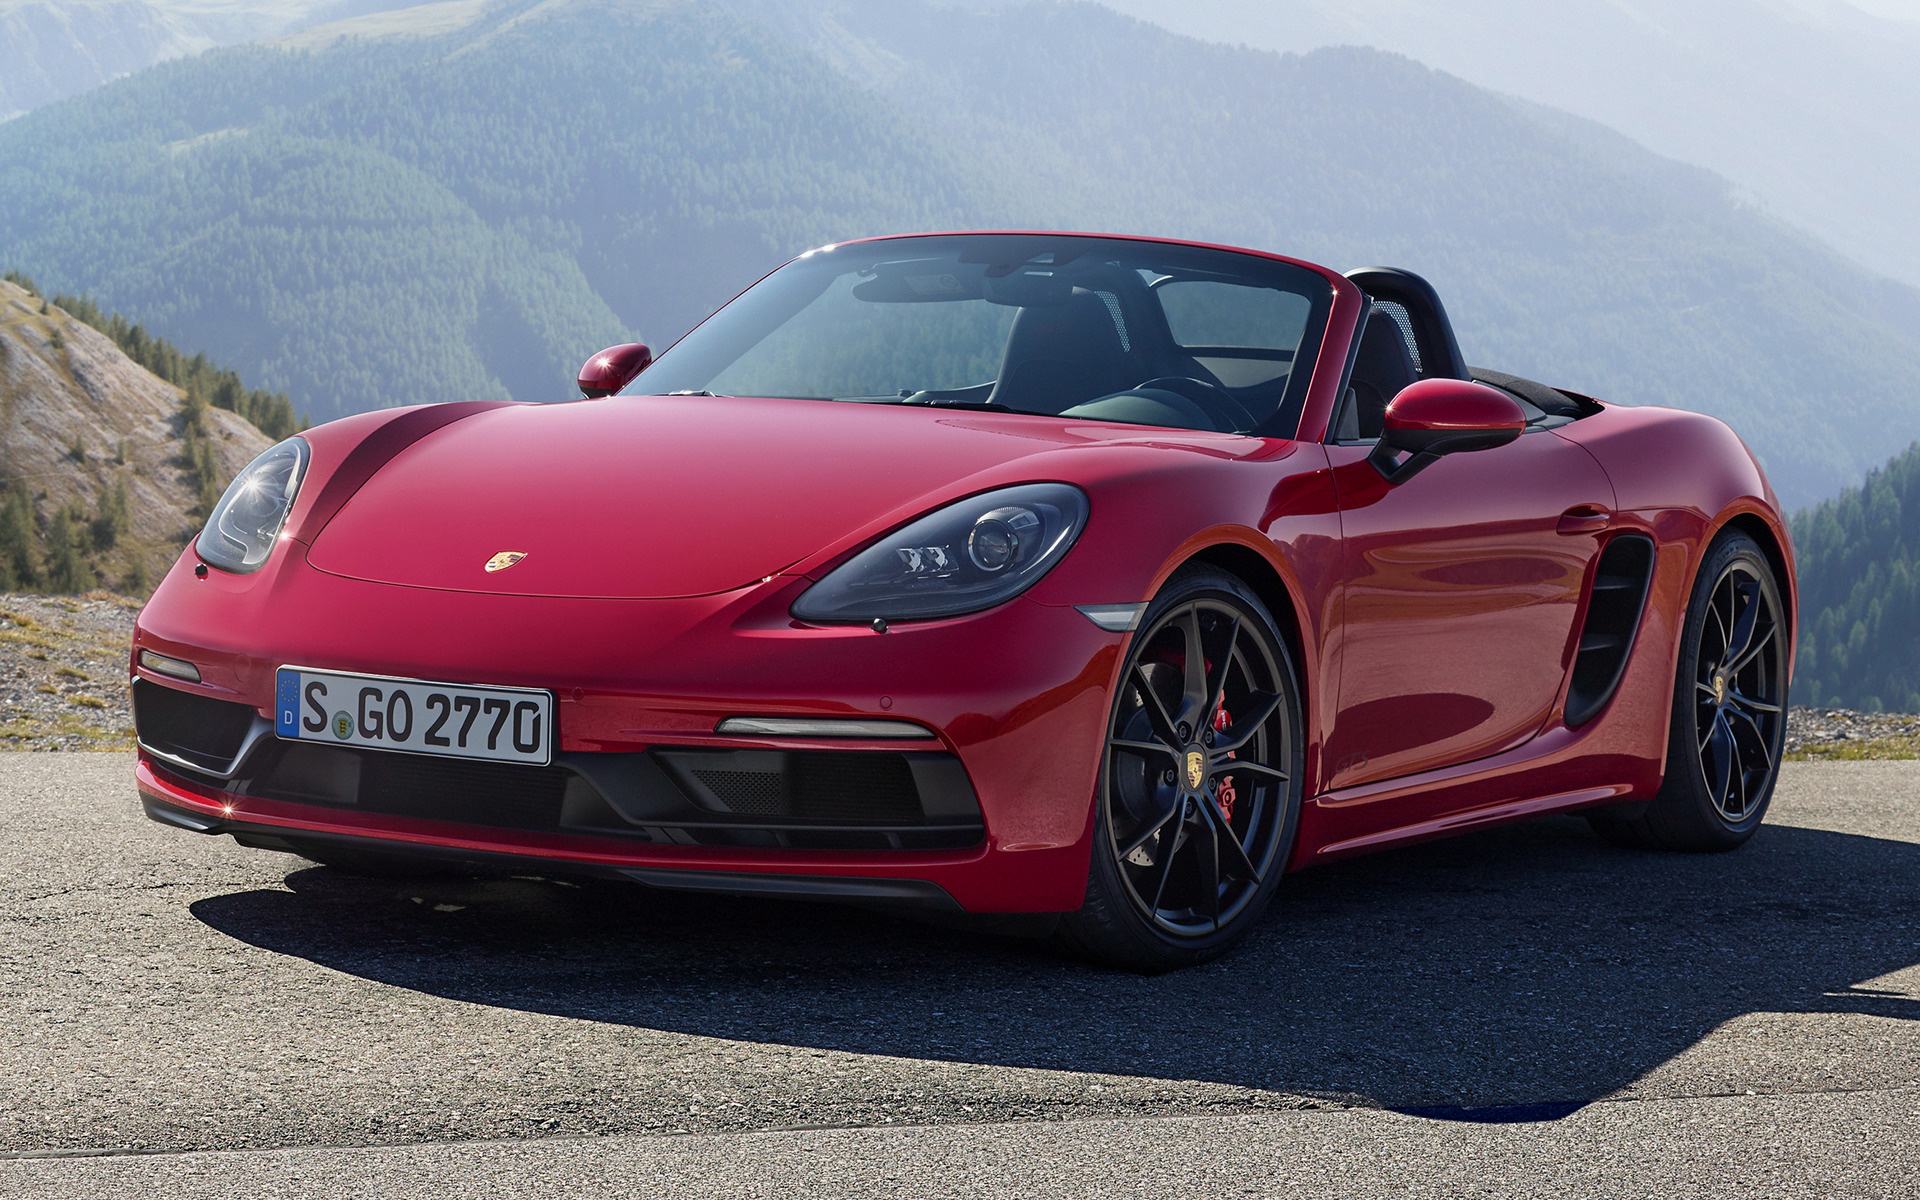 2017 Porsche 718 Boxster GTS Wallpapers and HD Images